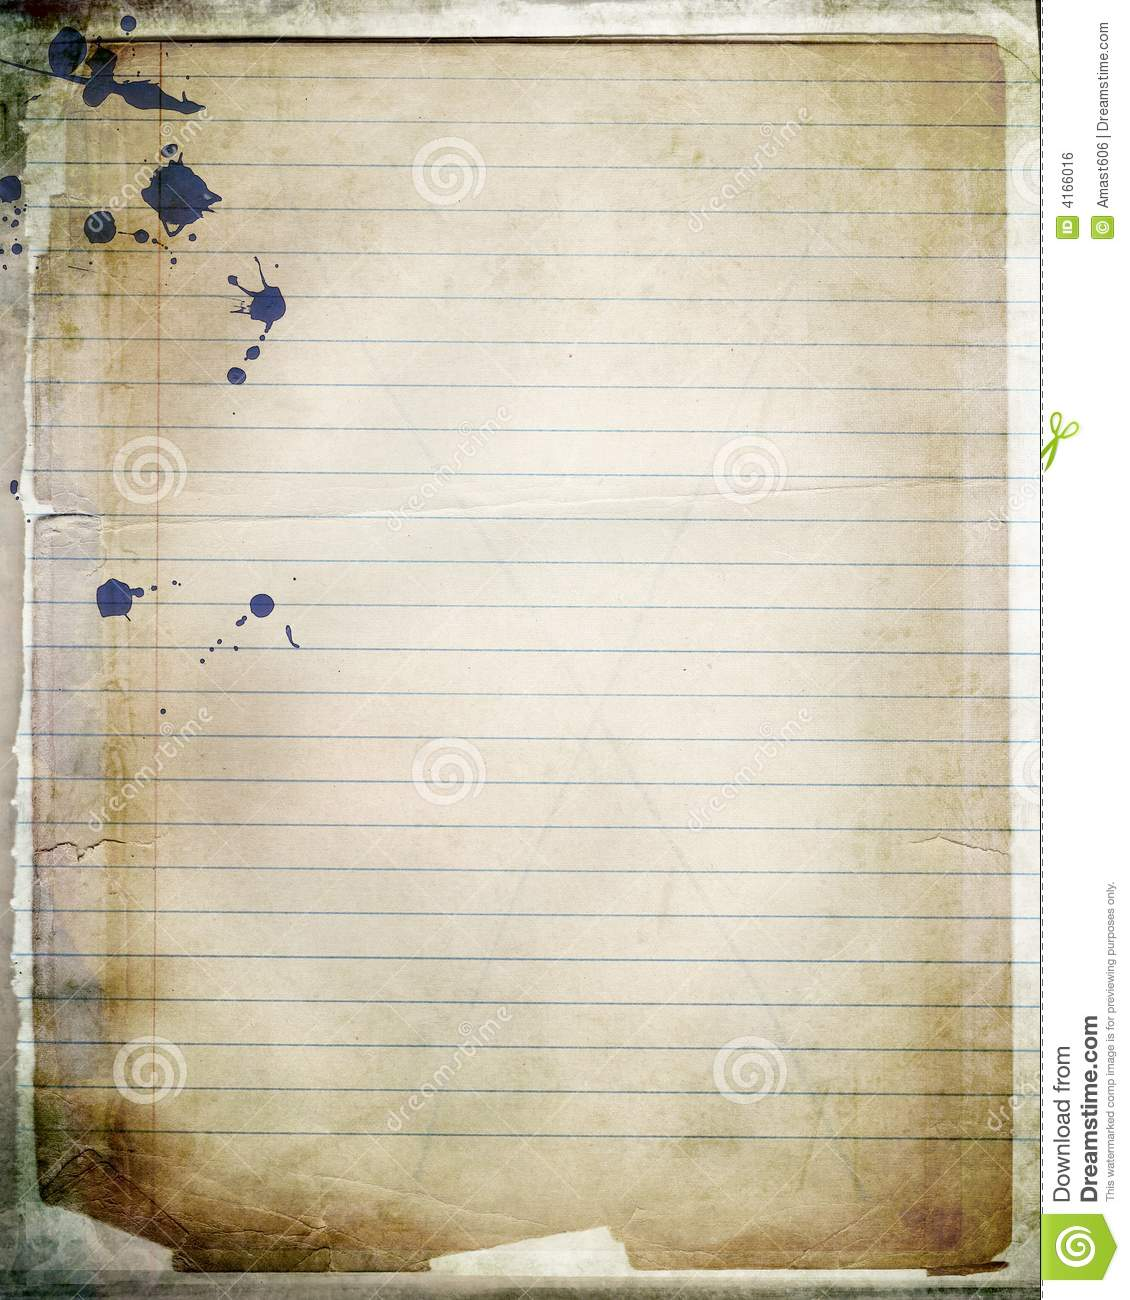 https://thumbs.dreamstime.com/z/layered-notebook-paper-4166016.jpg